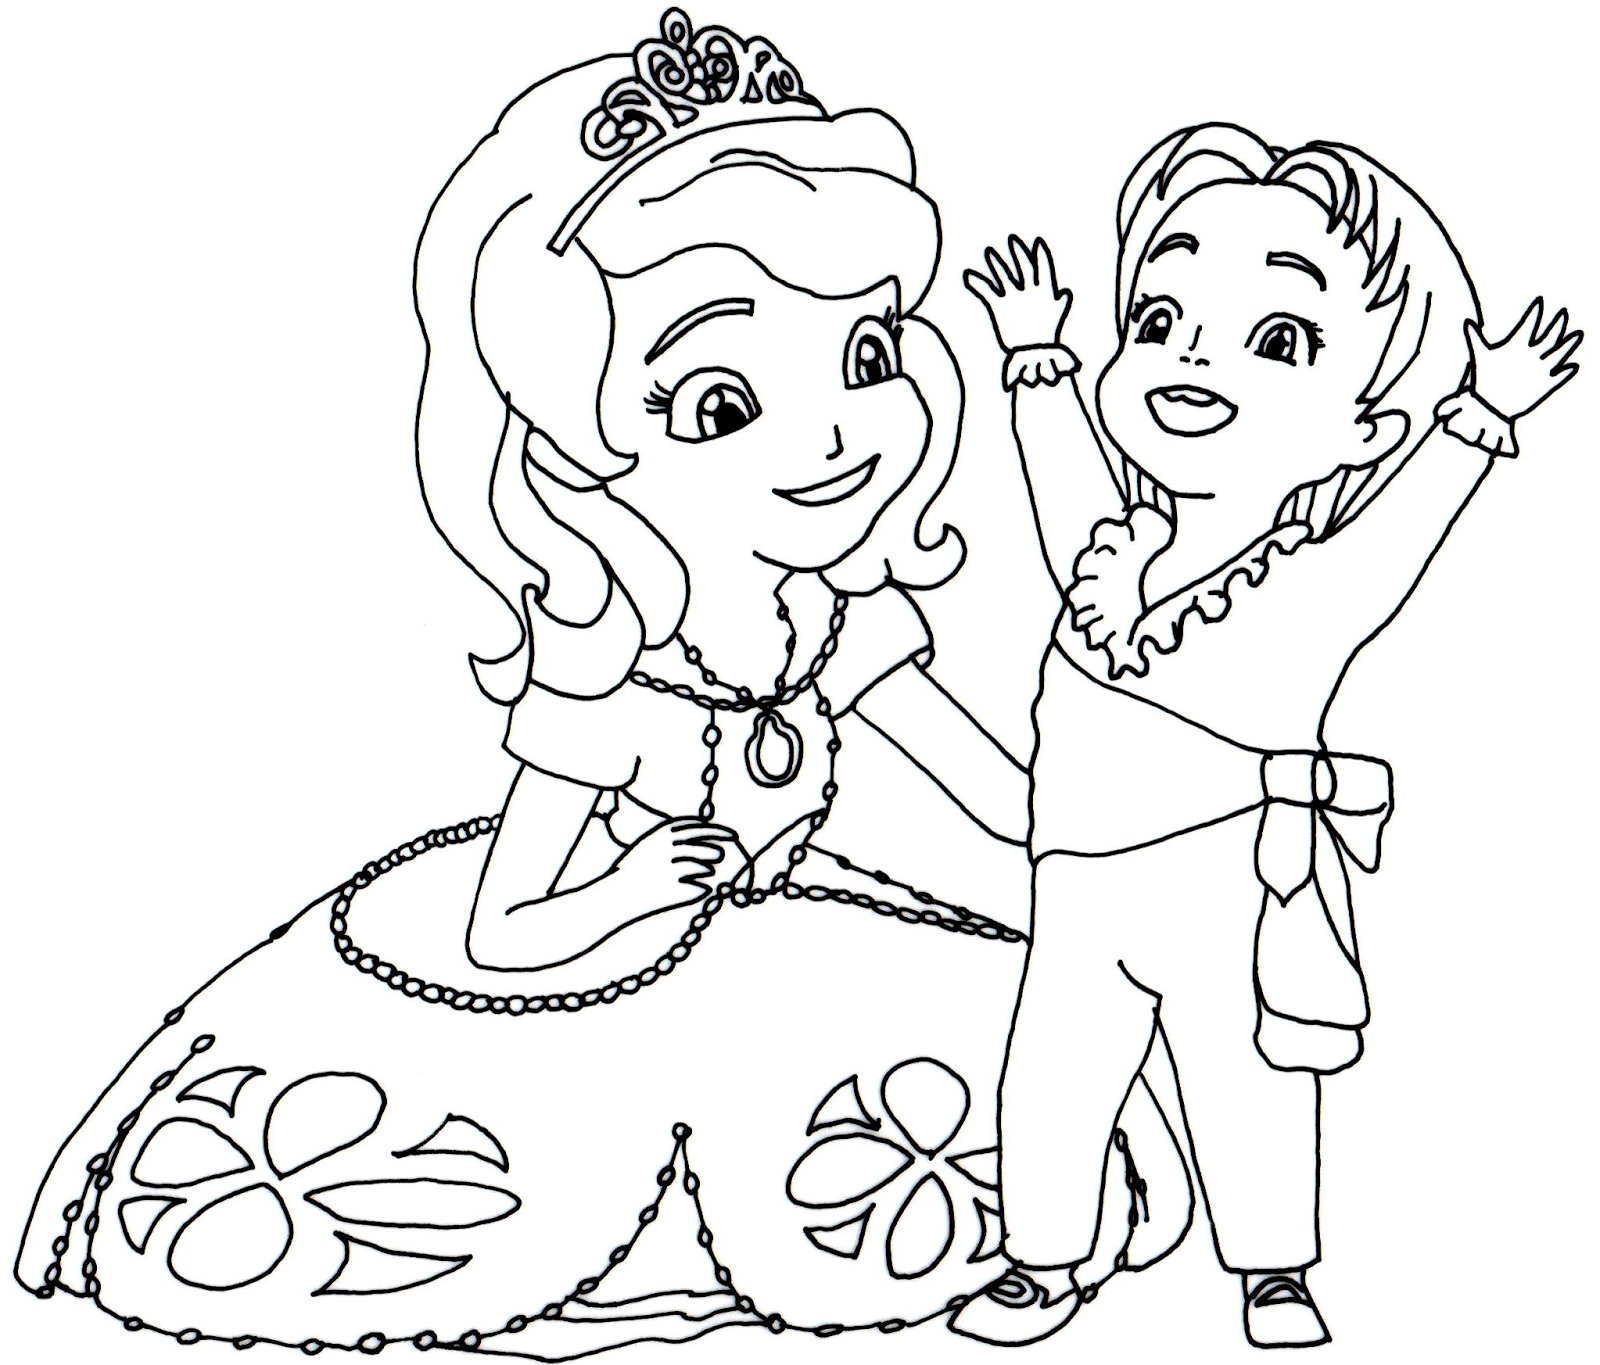 download sofia the first coloring 1 - Sofia Coloring Pages